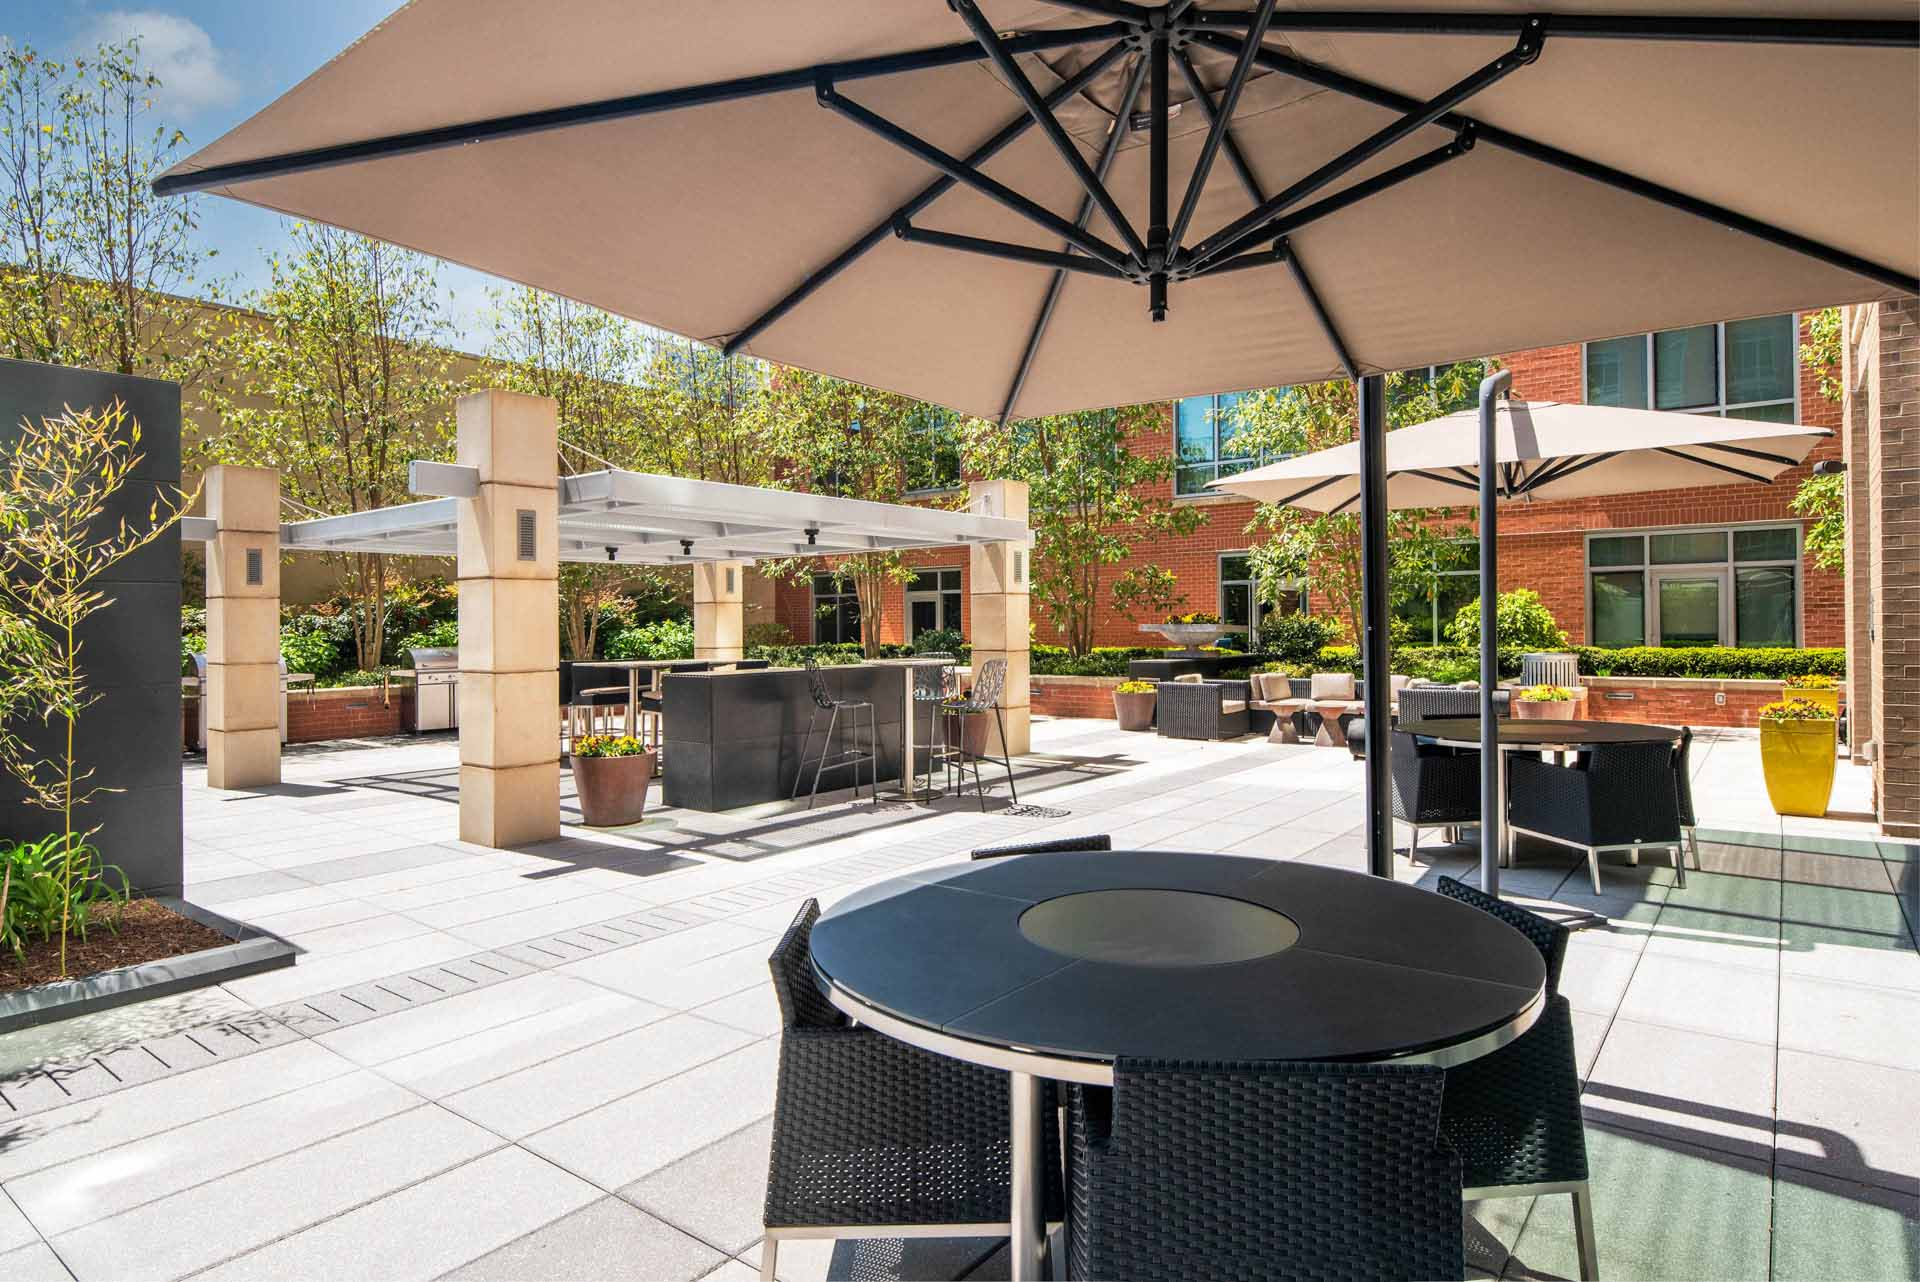 Patio four-top seating under an umbrella, with grills, bar, and lounge seating in background